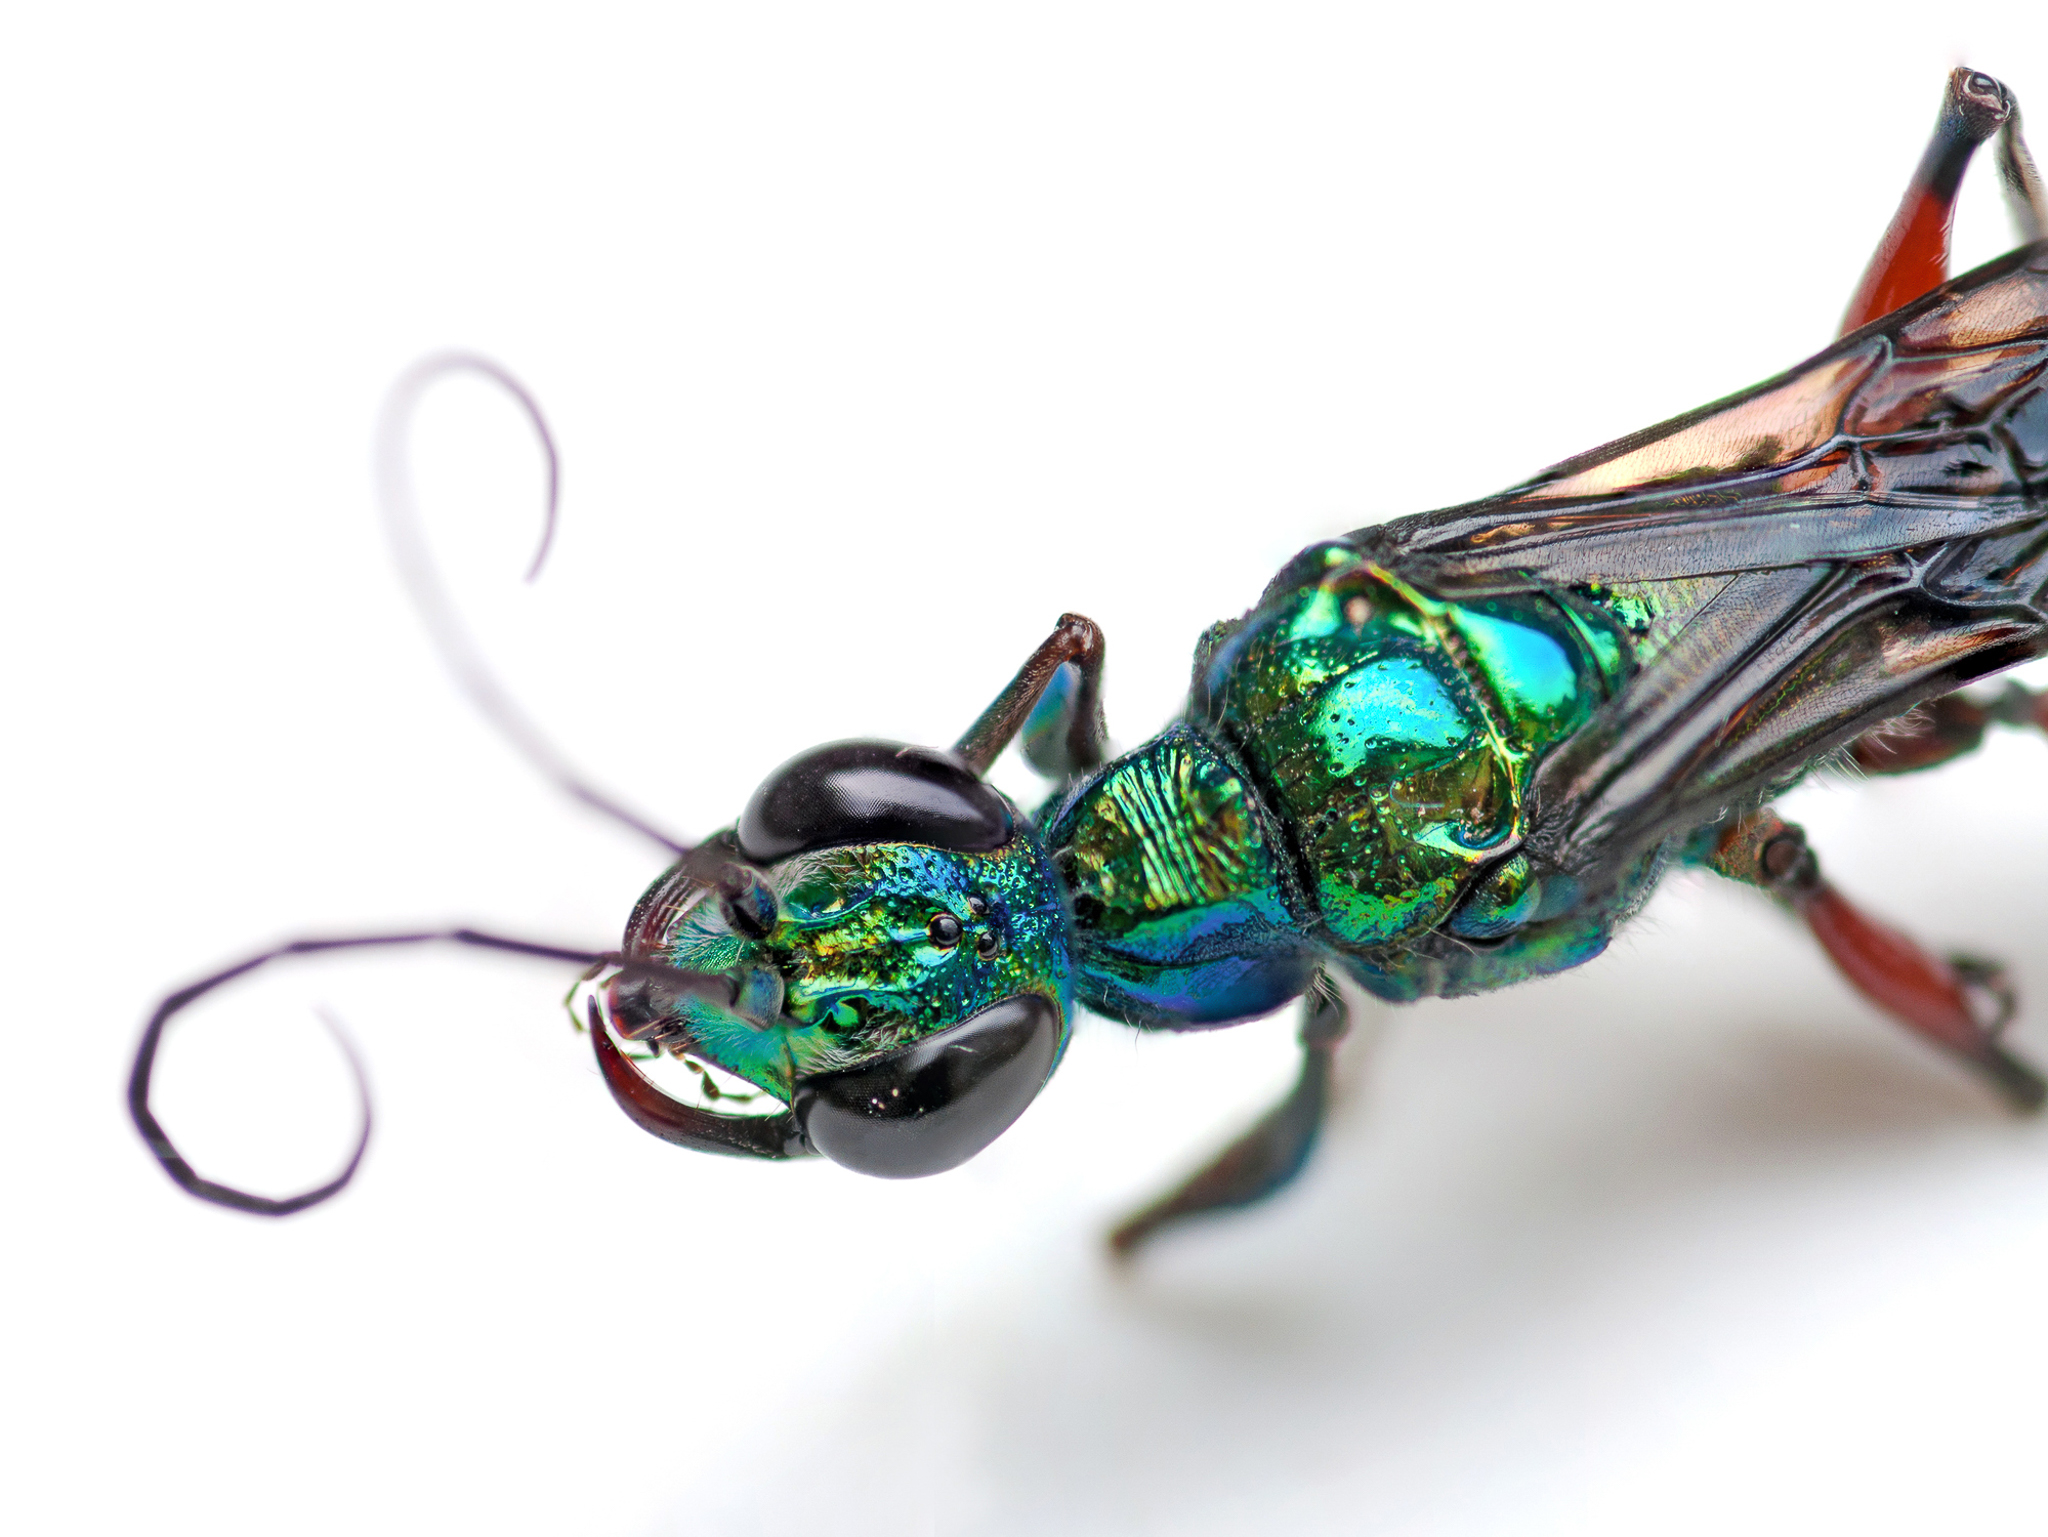 The emerald cockroach wasp or jewel wasp (<em>Ampulex compressa</em>) is a solitary wasp of the family Ampulicidae. The species is known for its unusual reproductive behavior, which involves stinging a cockroach and using it as a host for its larvae. Photo by Kimie Shimabukuro/Getty Images